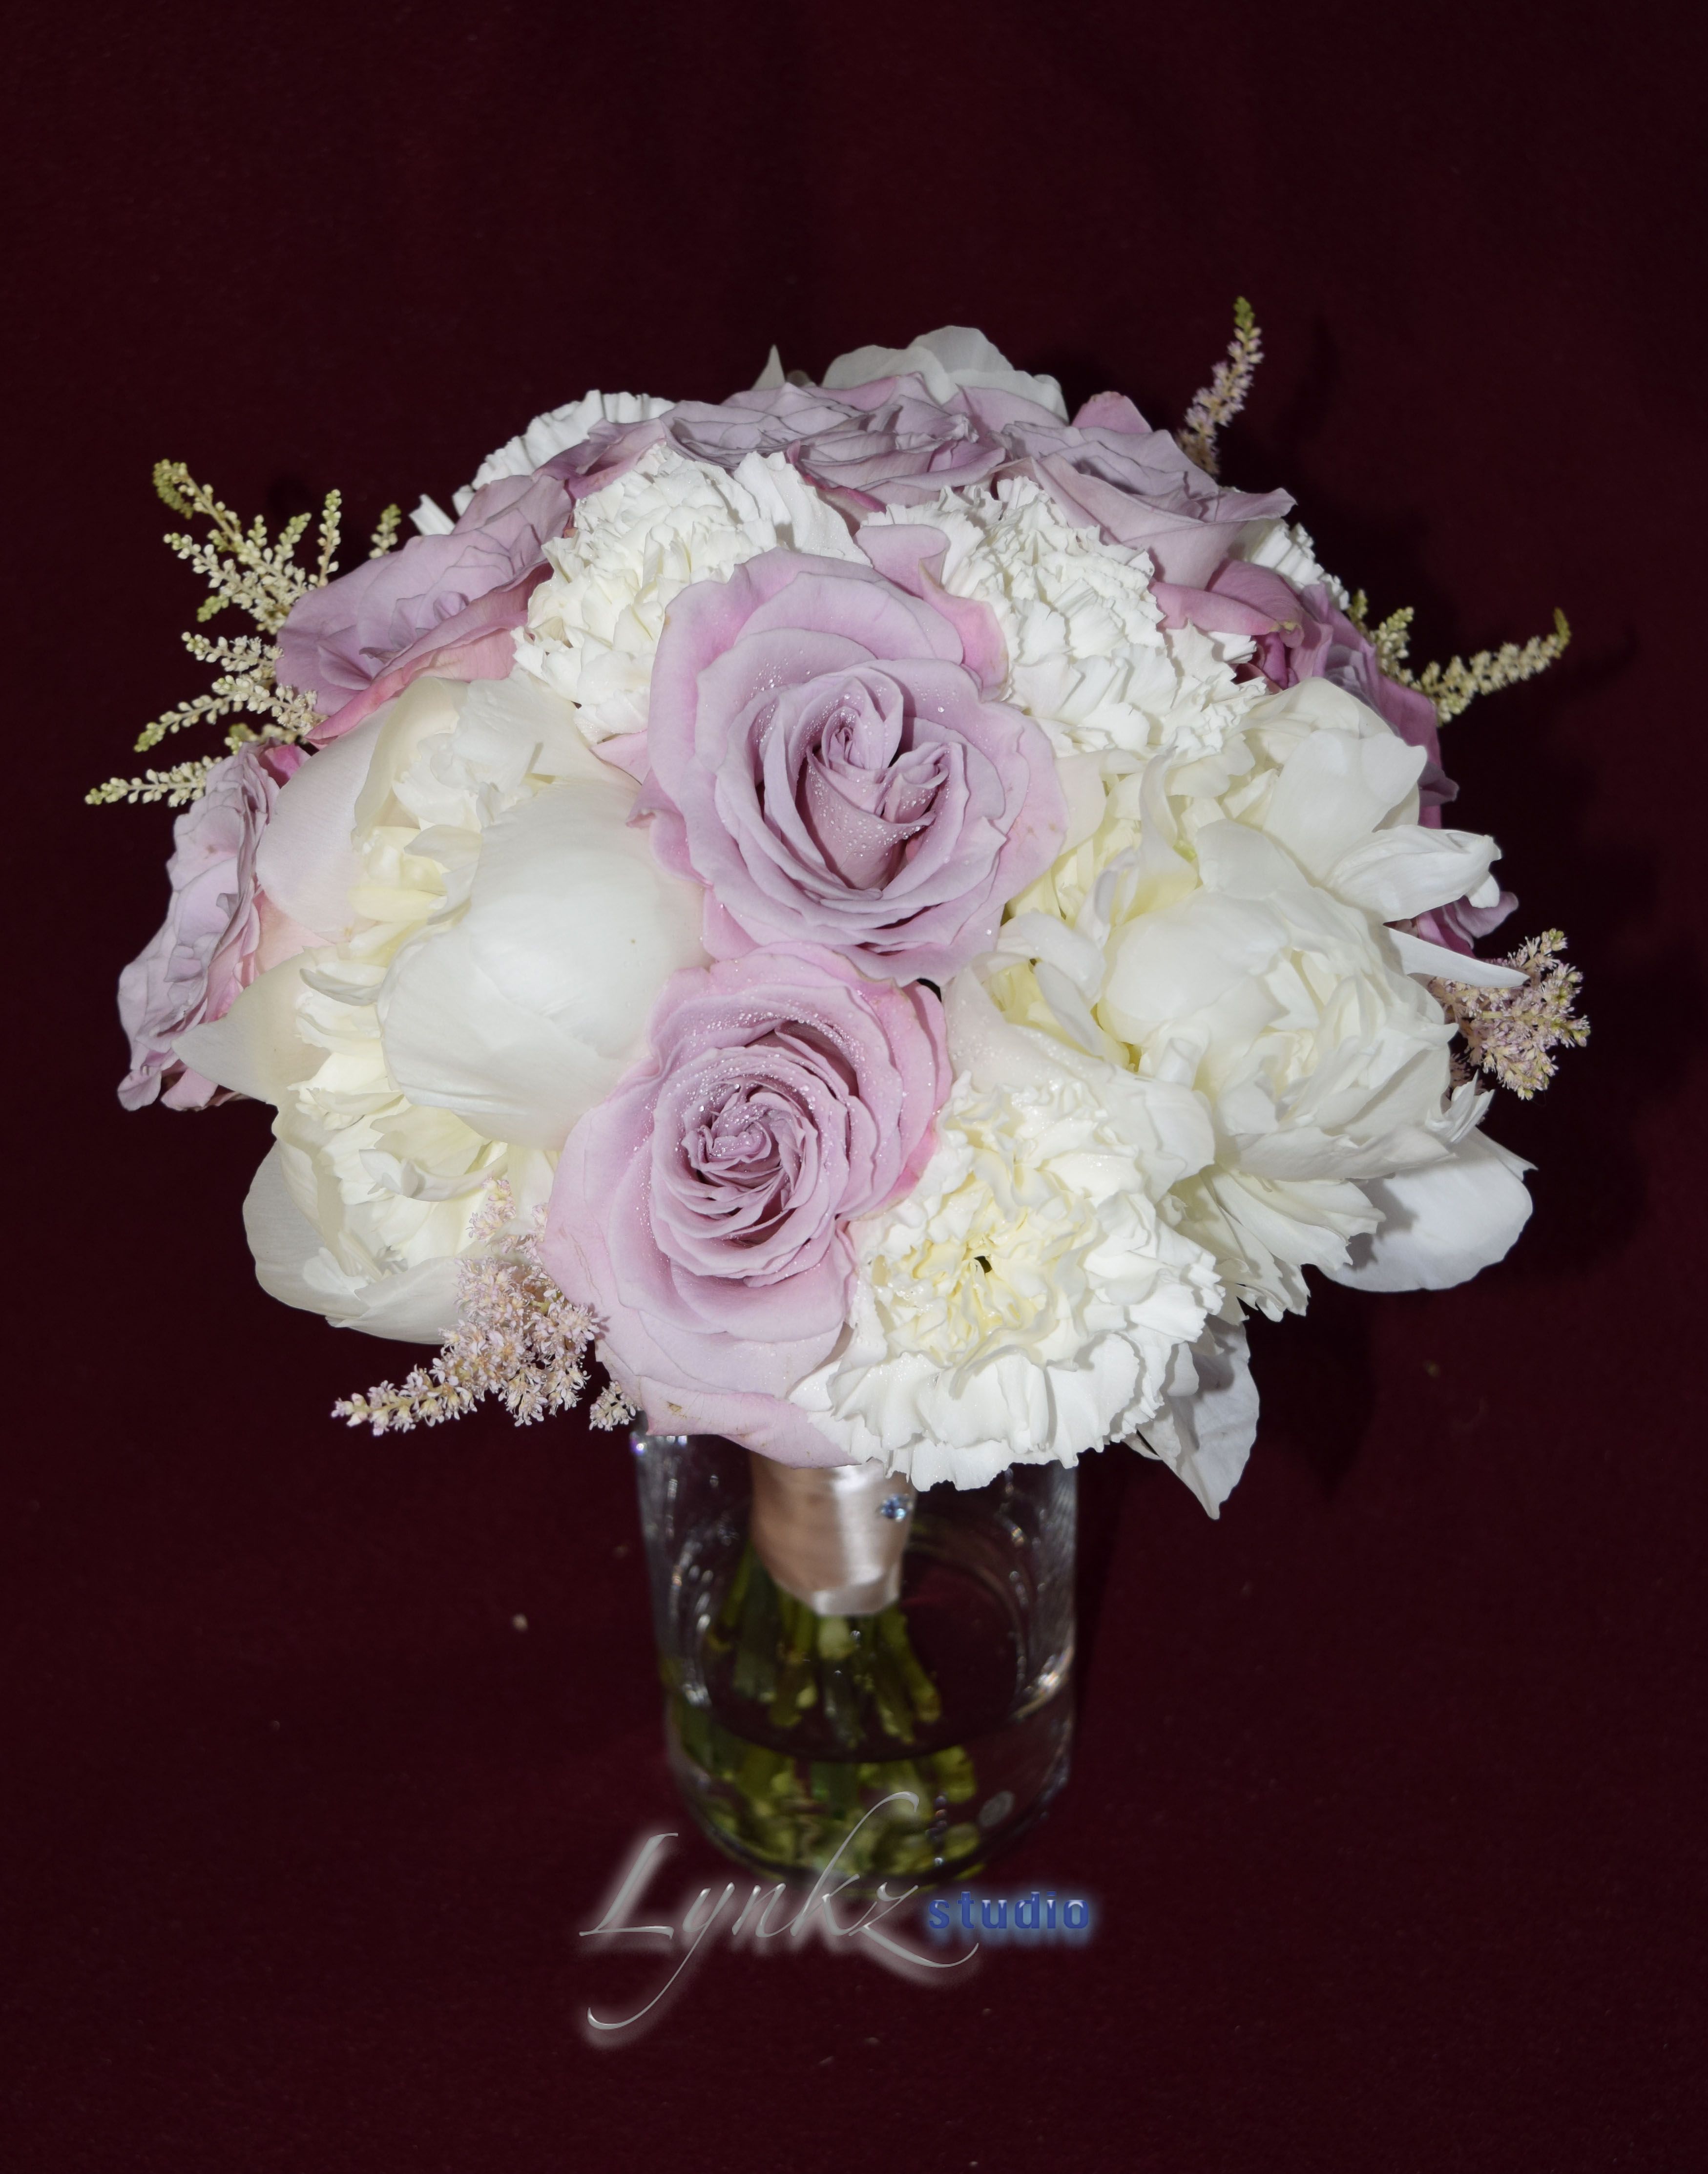 bride'smaids bouquet with white peonies, roses, carnations and